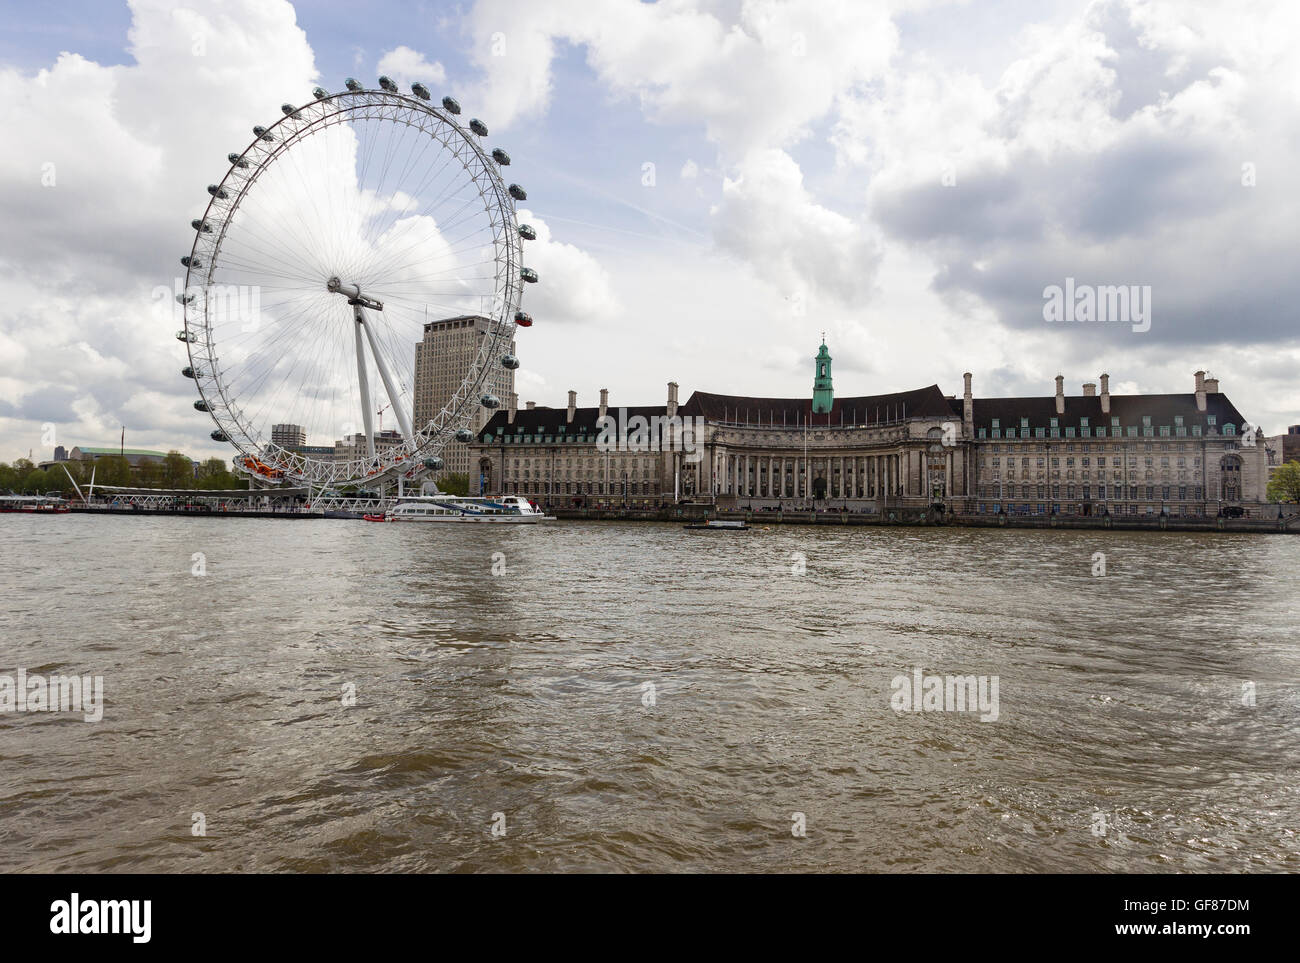 The London Eye ferris wheel and the old Greater London Council building on the south bank of the River Thames, London - Stock Image